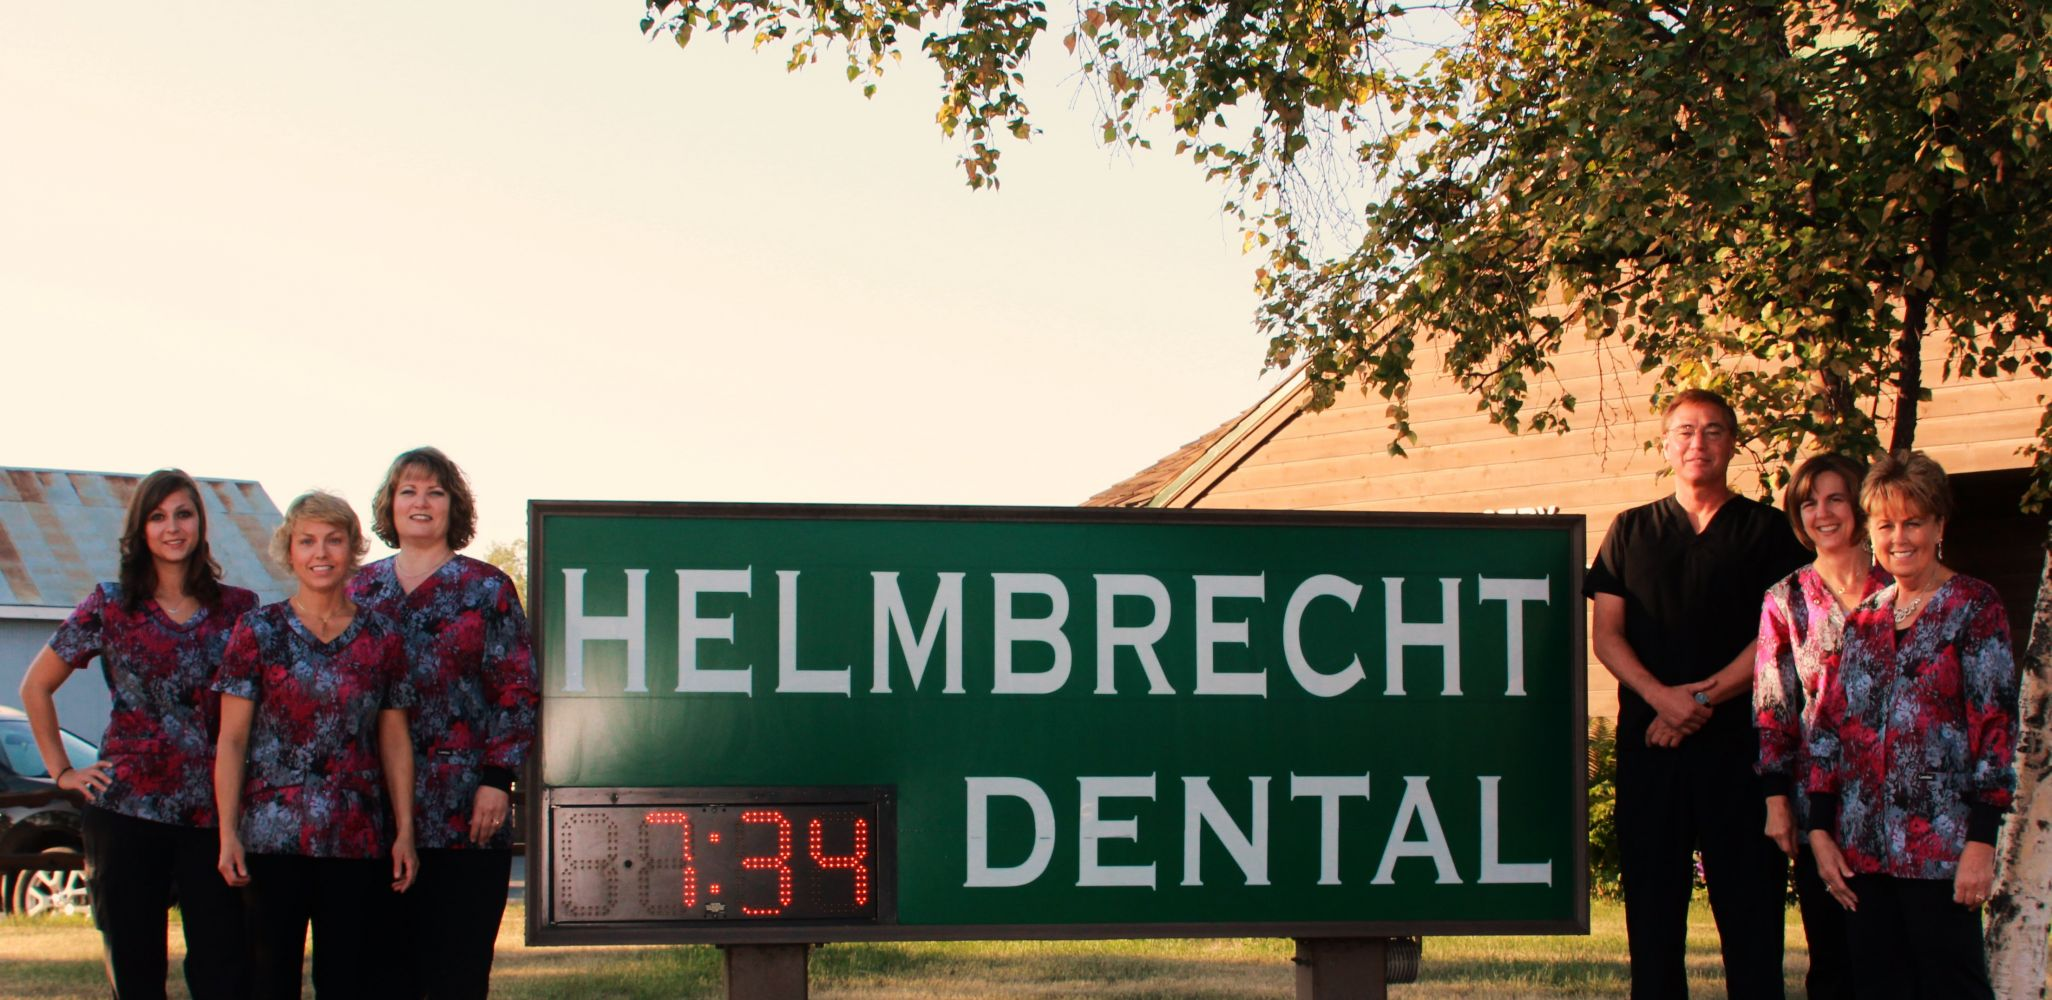 Helmbrecht Dental  in Fairbanks, AK.